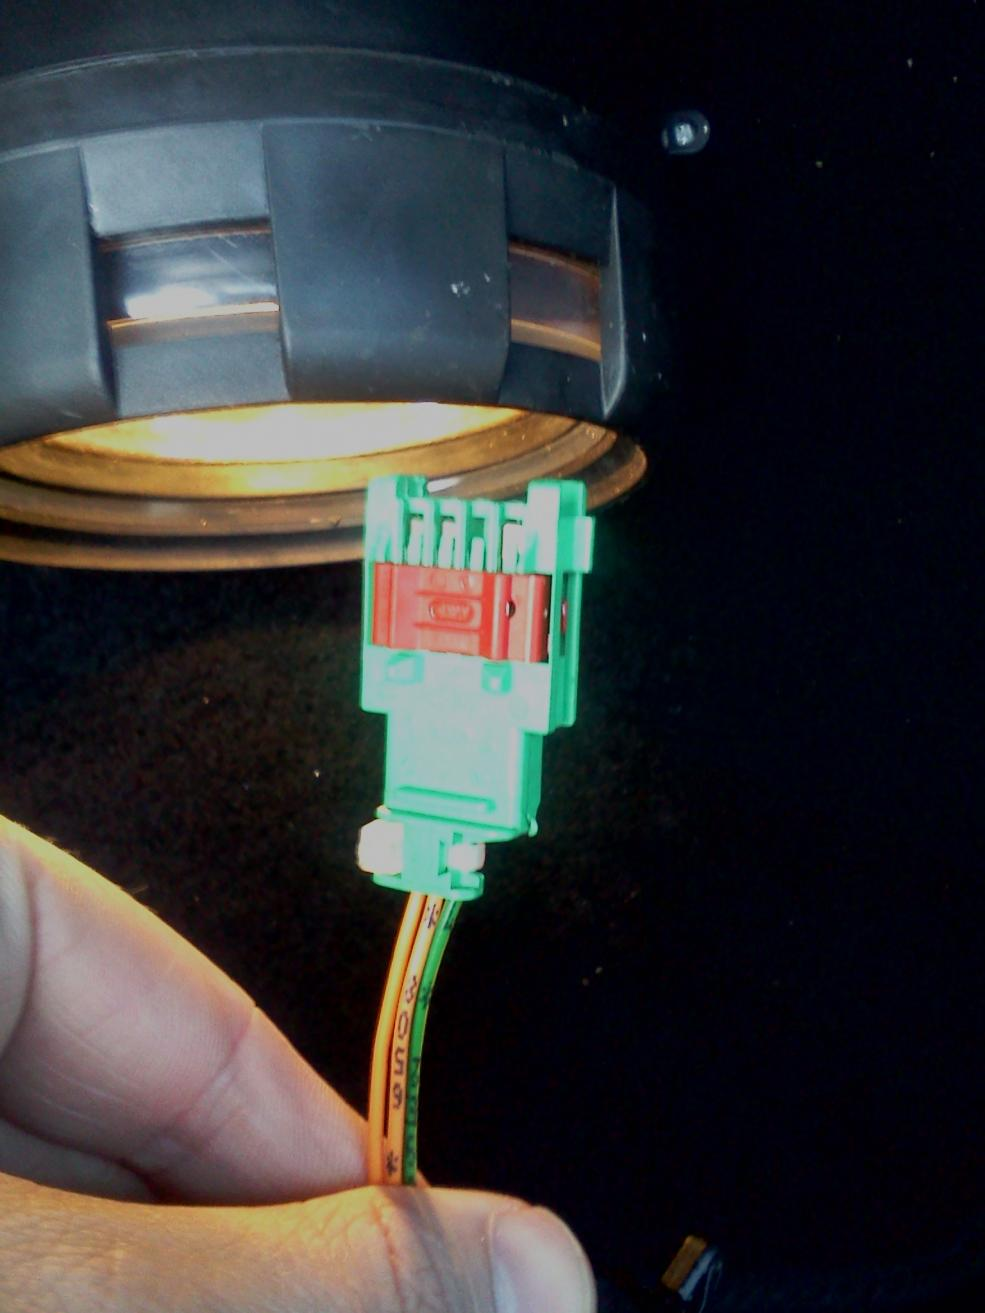 hight resolution of 2004 307cc wiring schematic peugeot forums airbag jpg img 20130114 131841 jpg